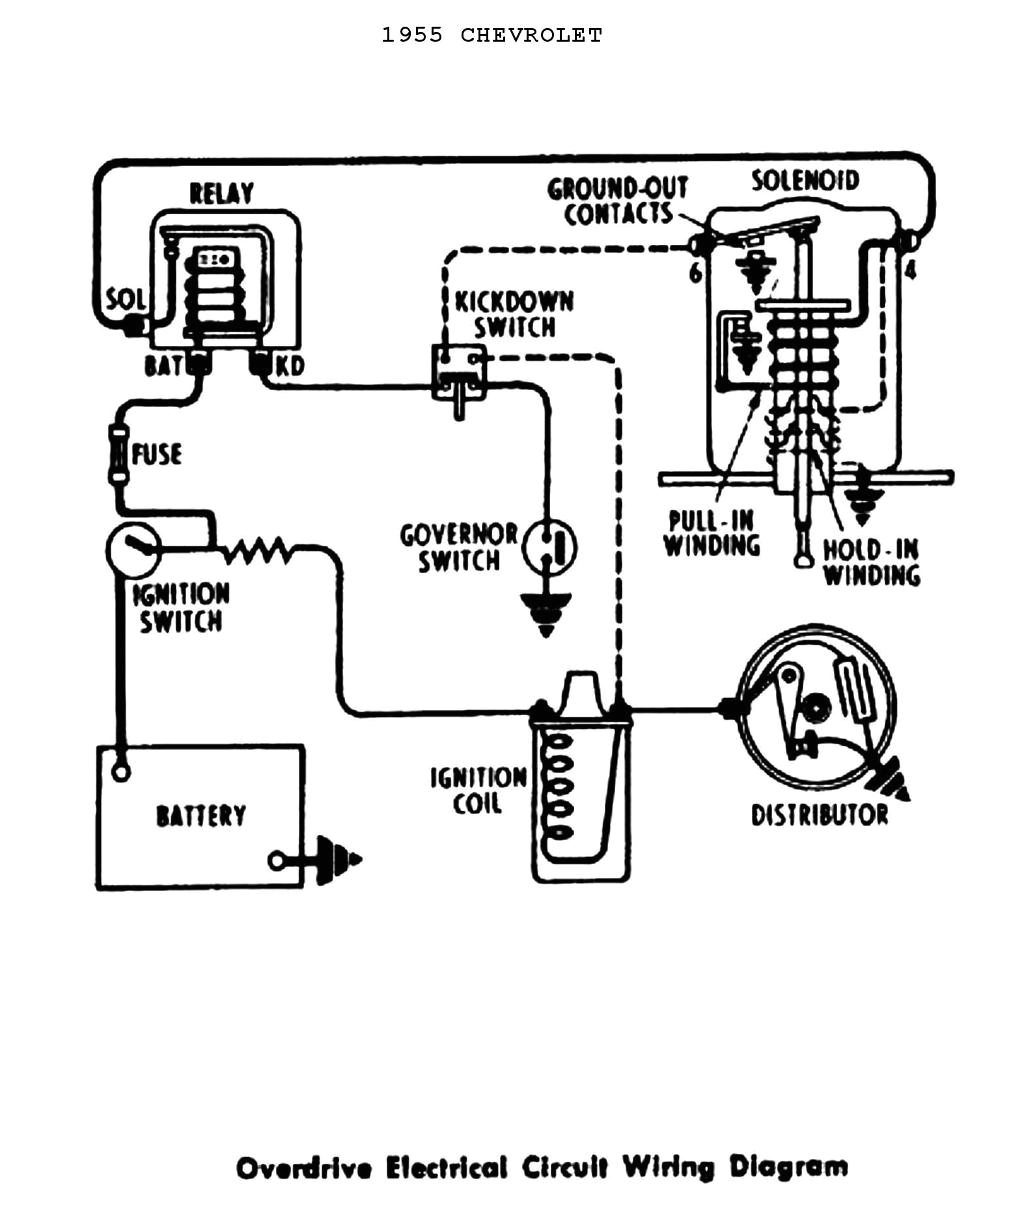 1956 chevy overdrive wiring wiring diagrams show 1955 chevy overdrive wiring harness